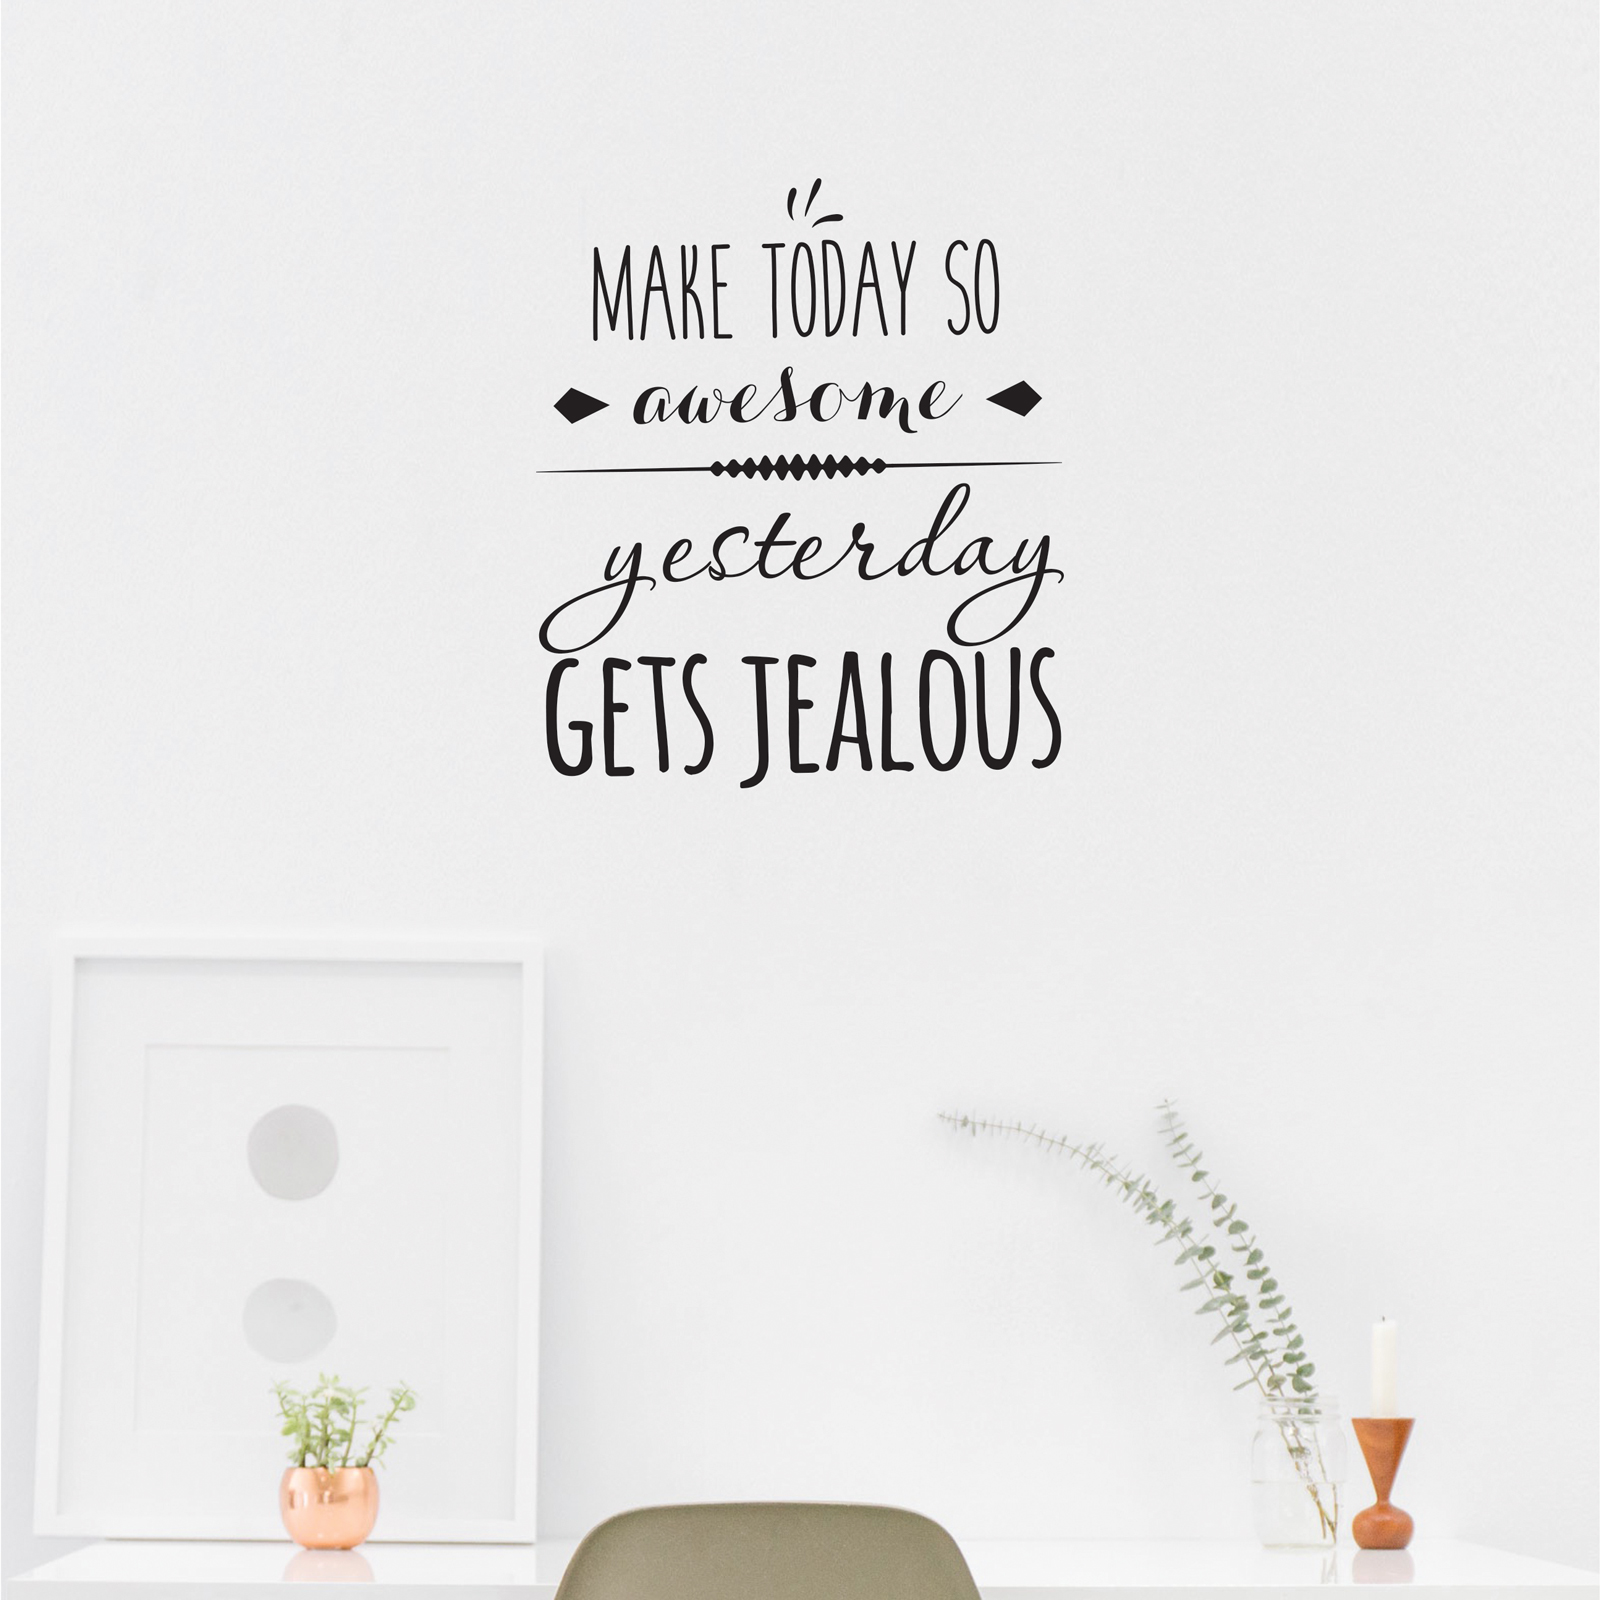 Make Today Awesome - Wall Decal